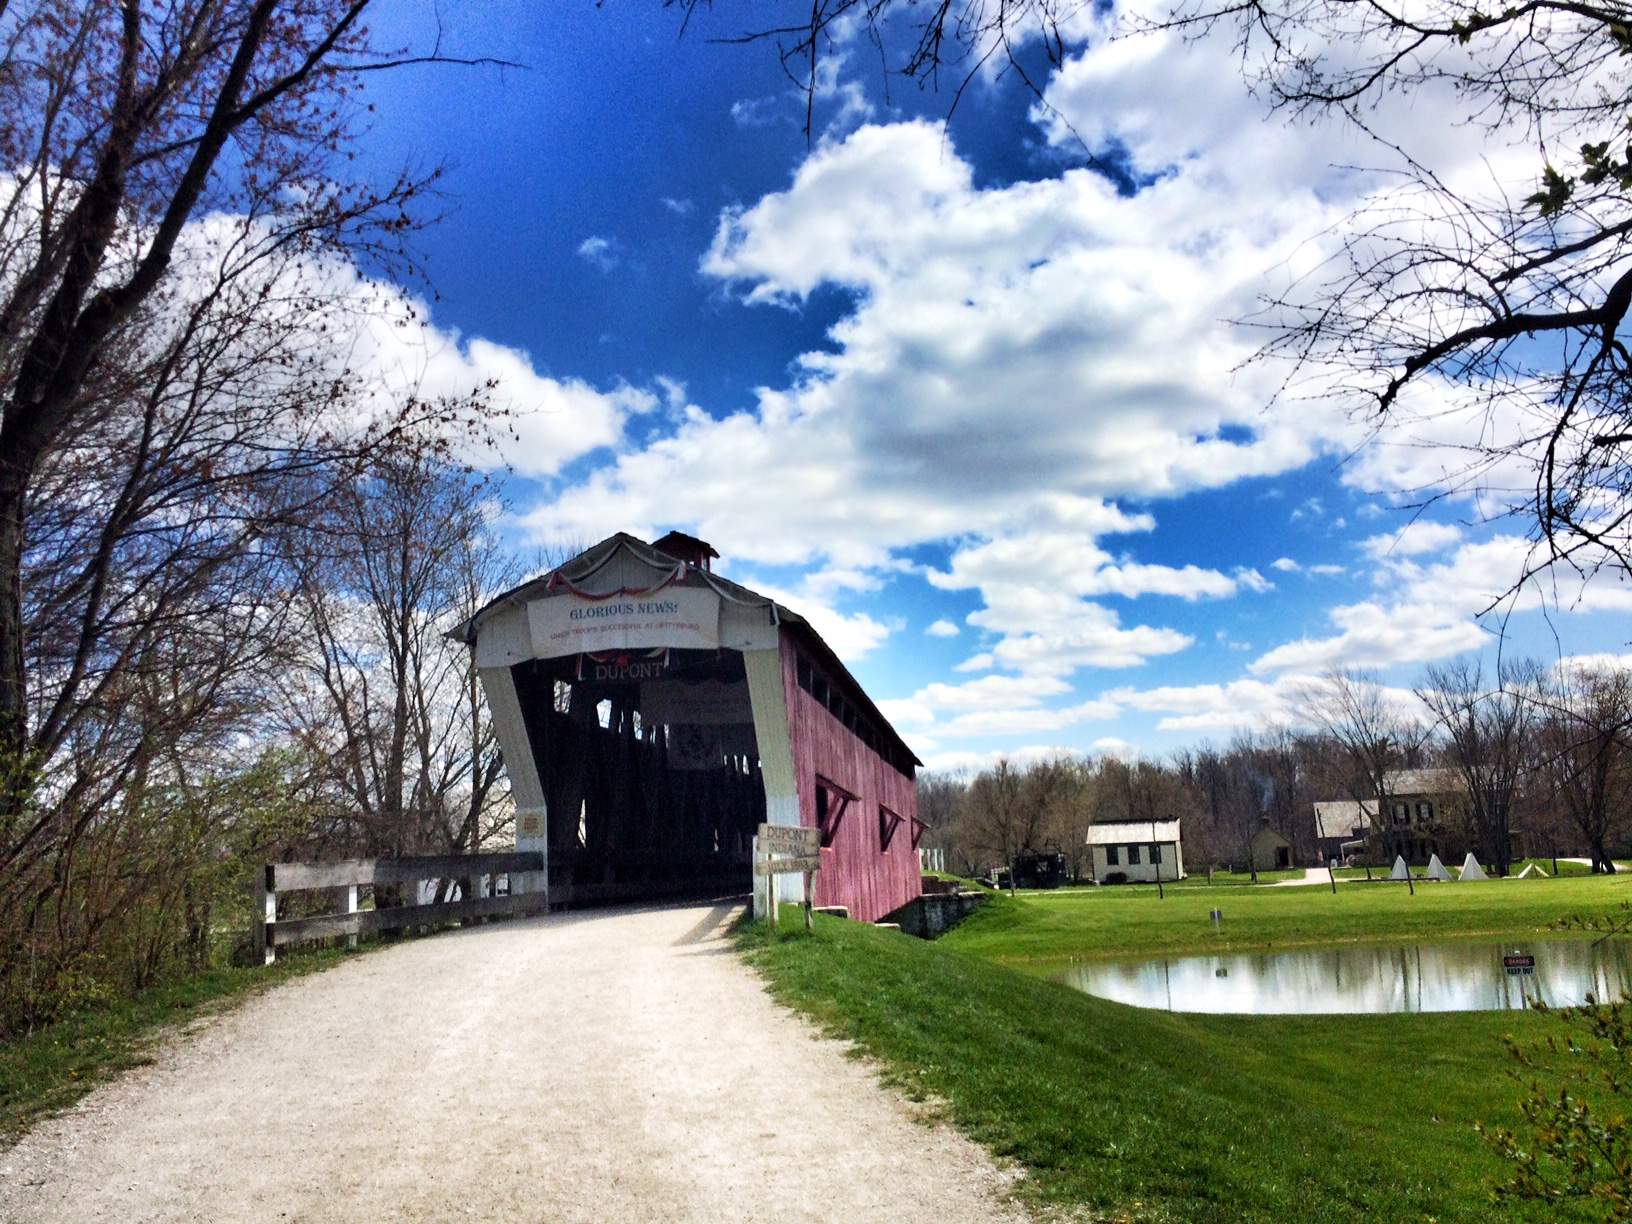 things to do with kids in indianapolis - Conner Prairie Indianapolis